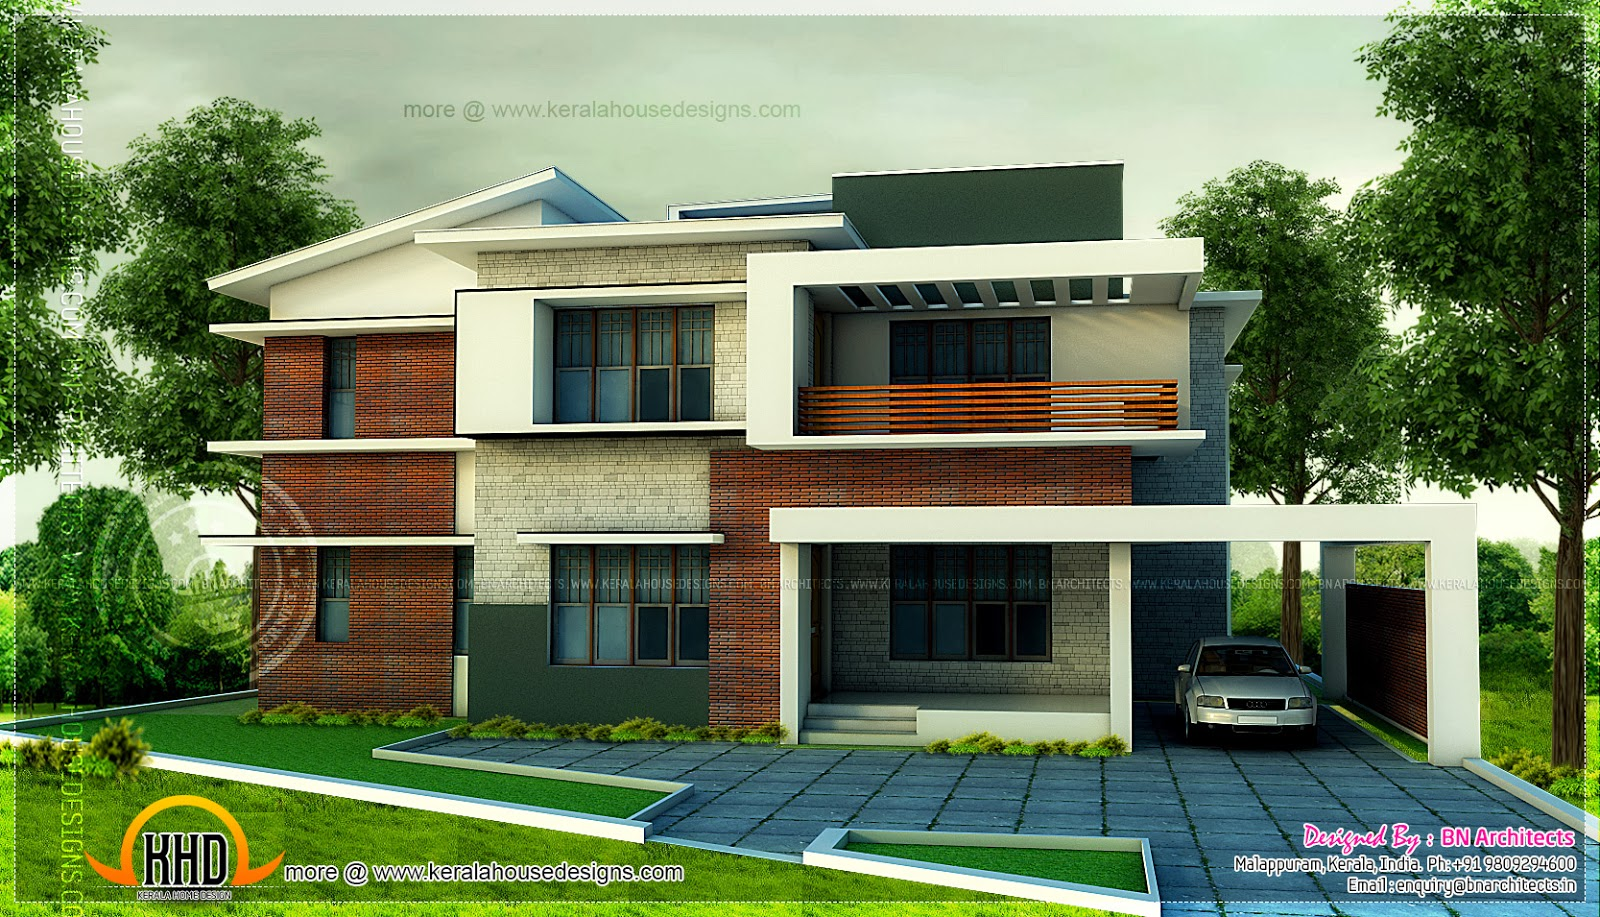 5 bedroom modern home in 3440 sq feet floor plan for 5 bedroom modern farmhouse plans